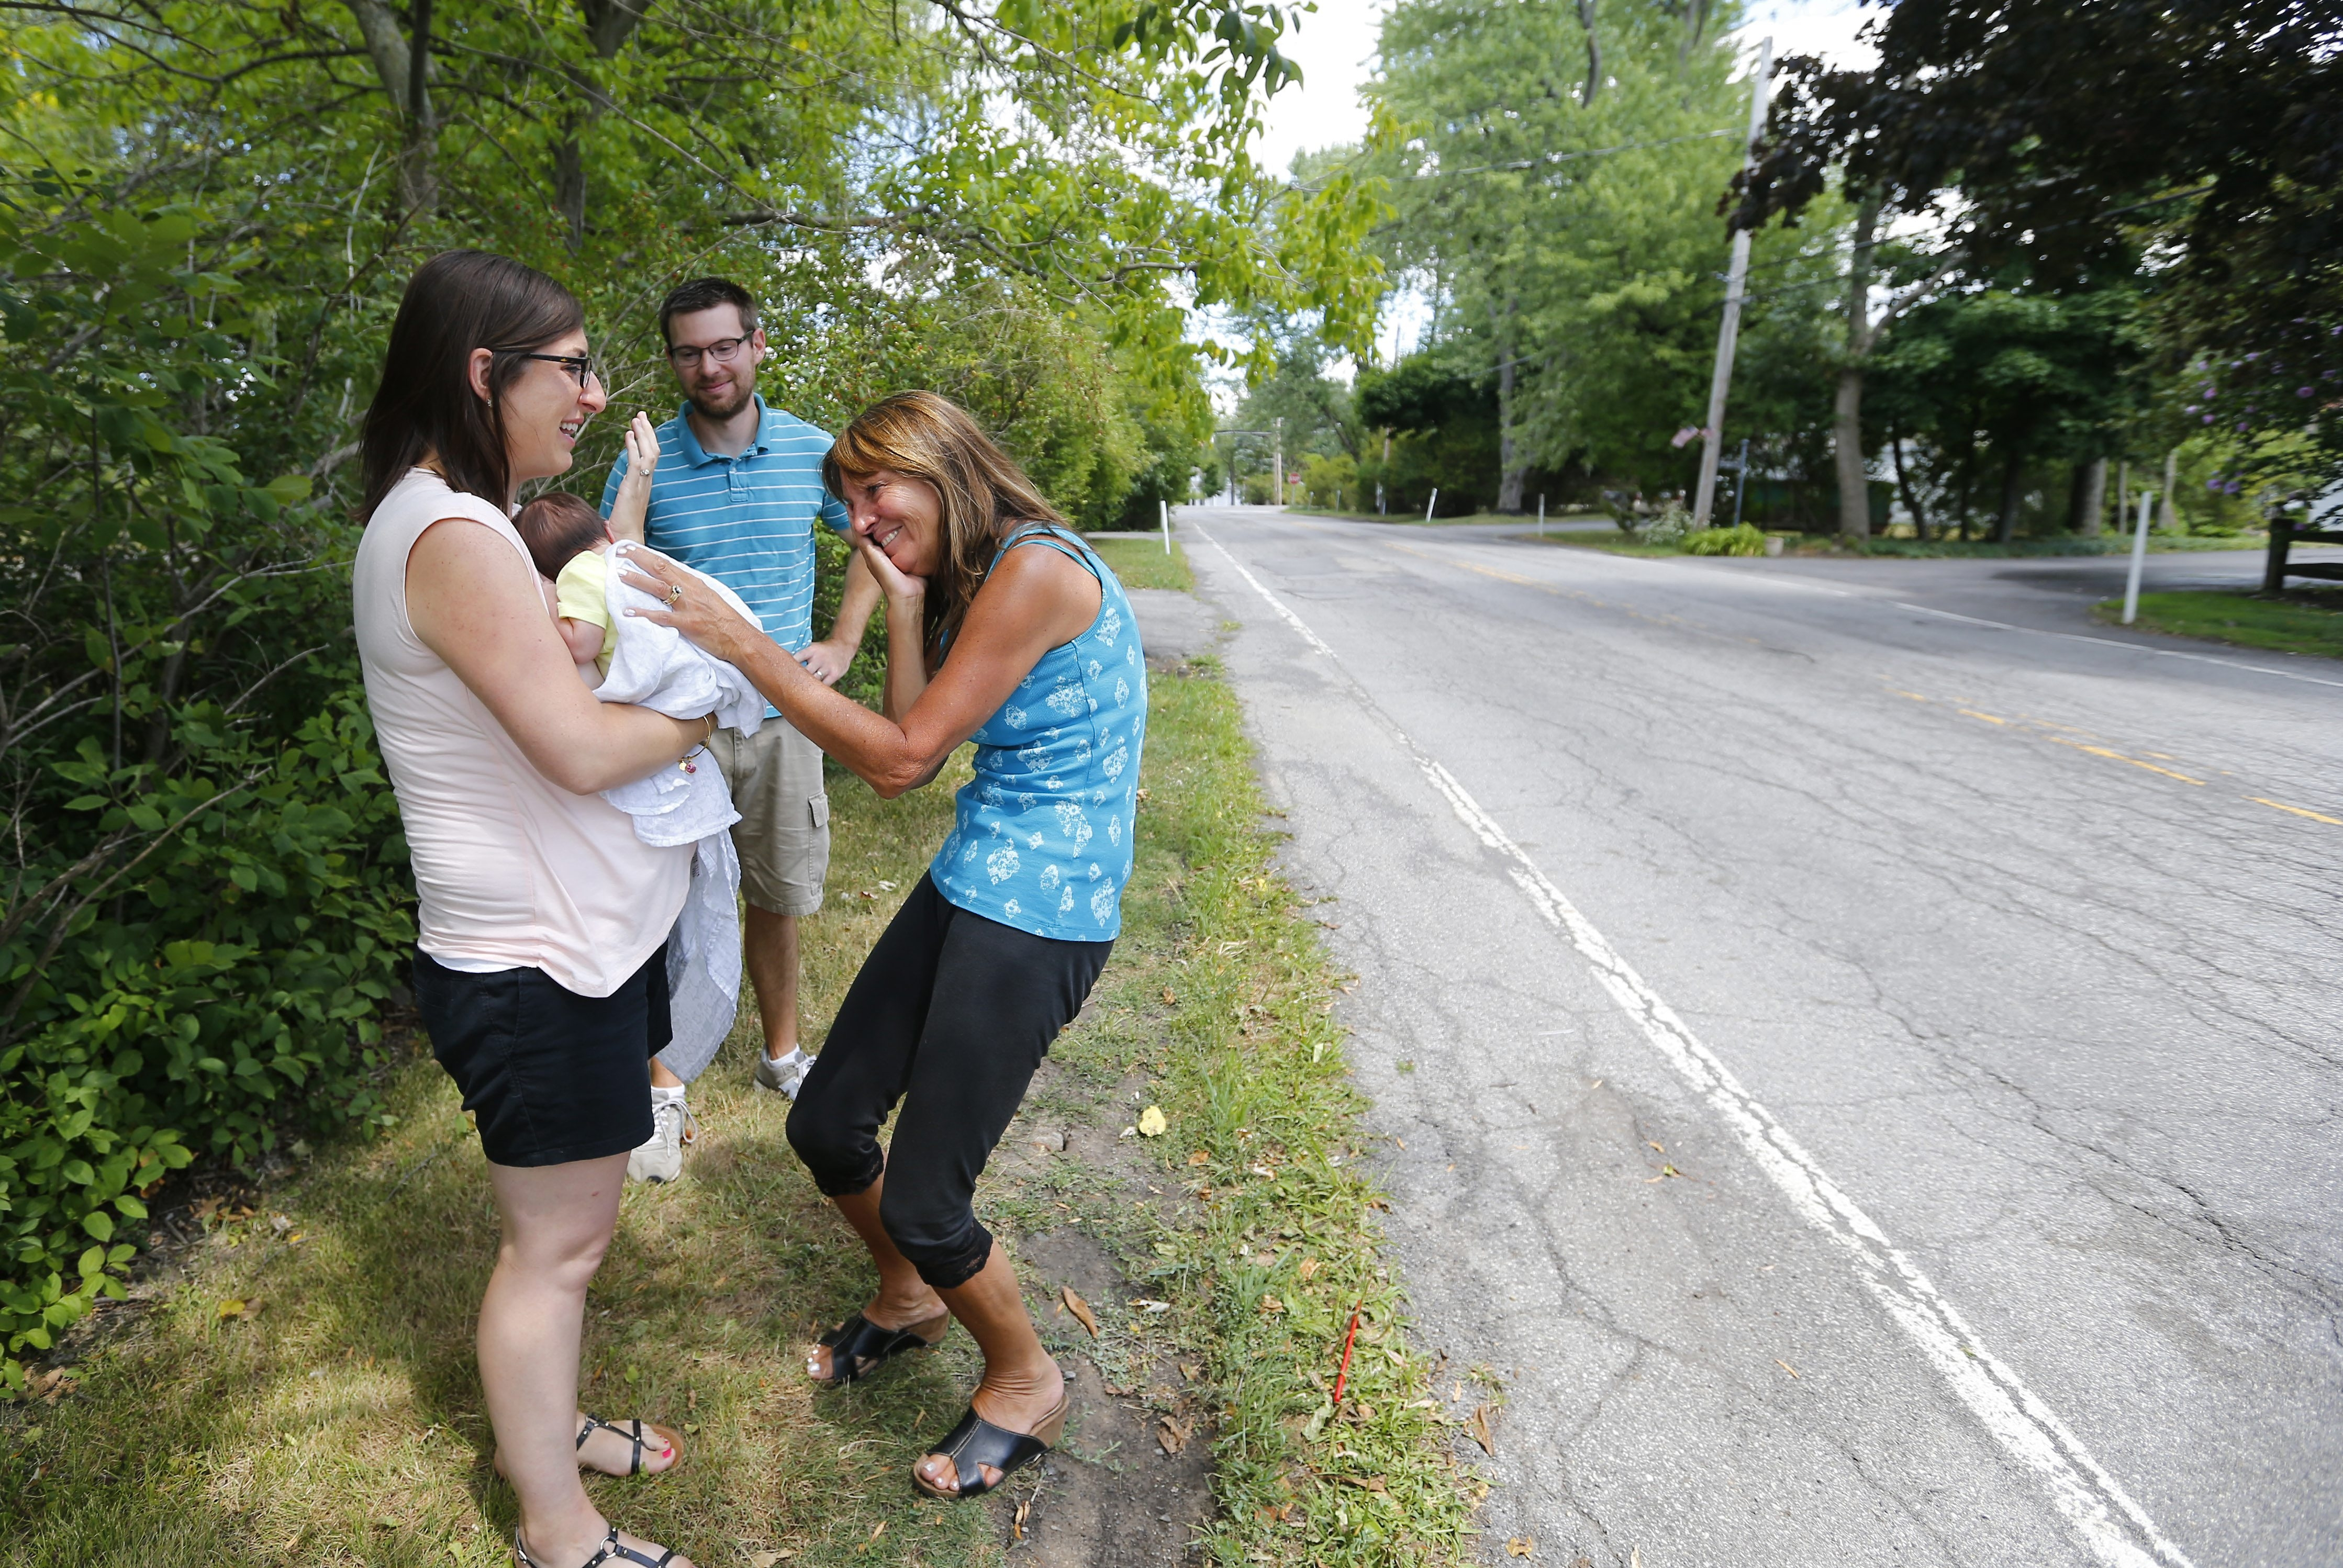 Amanda and Matthew Colebeck and infant Paige on Tuesday meet Kathy Barnes, right, the motorist who stopped to offer assistance Friday on Park Club Lane in Amherst where Paige was born.